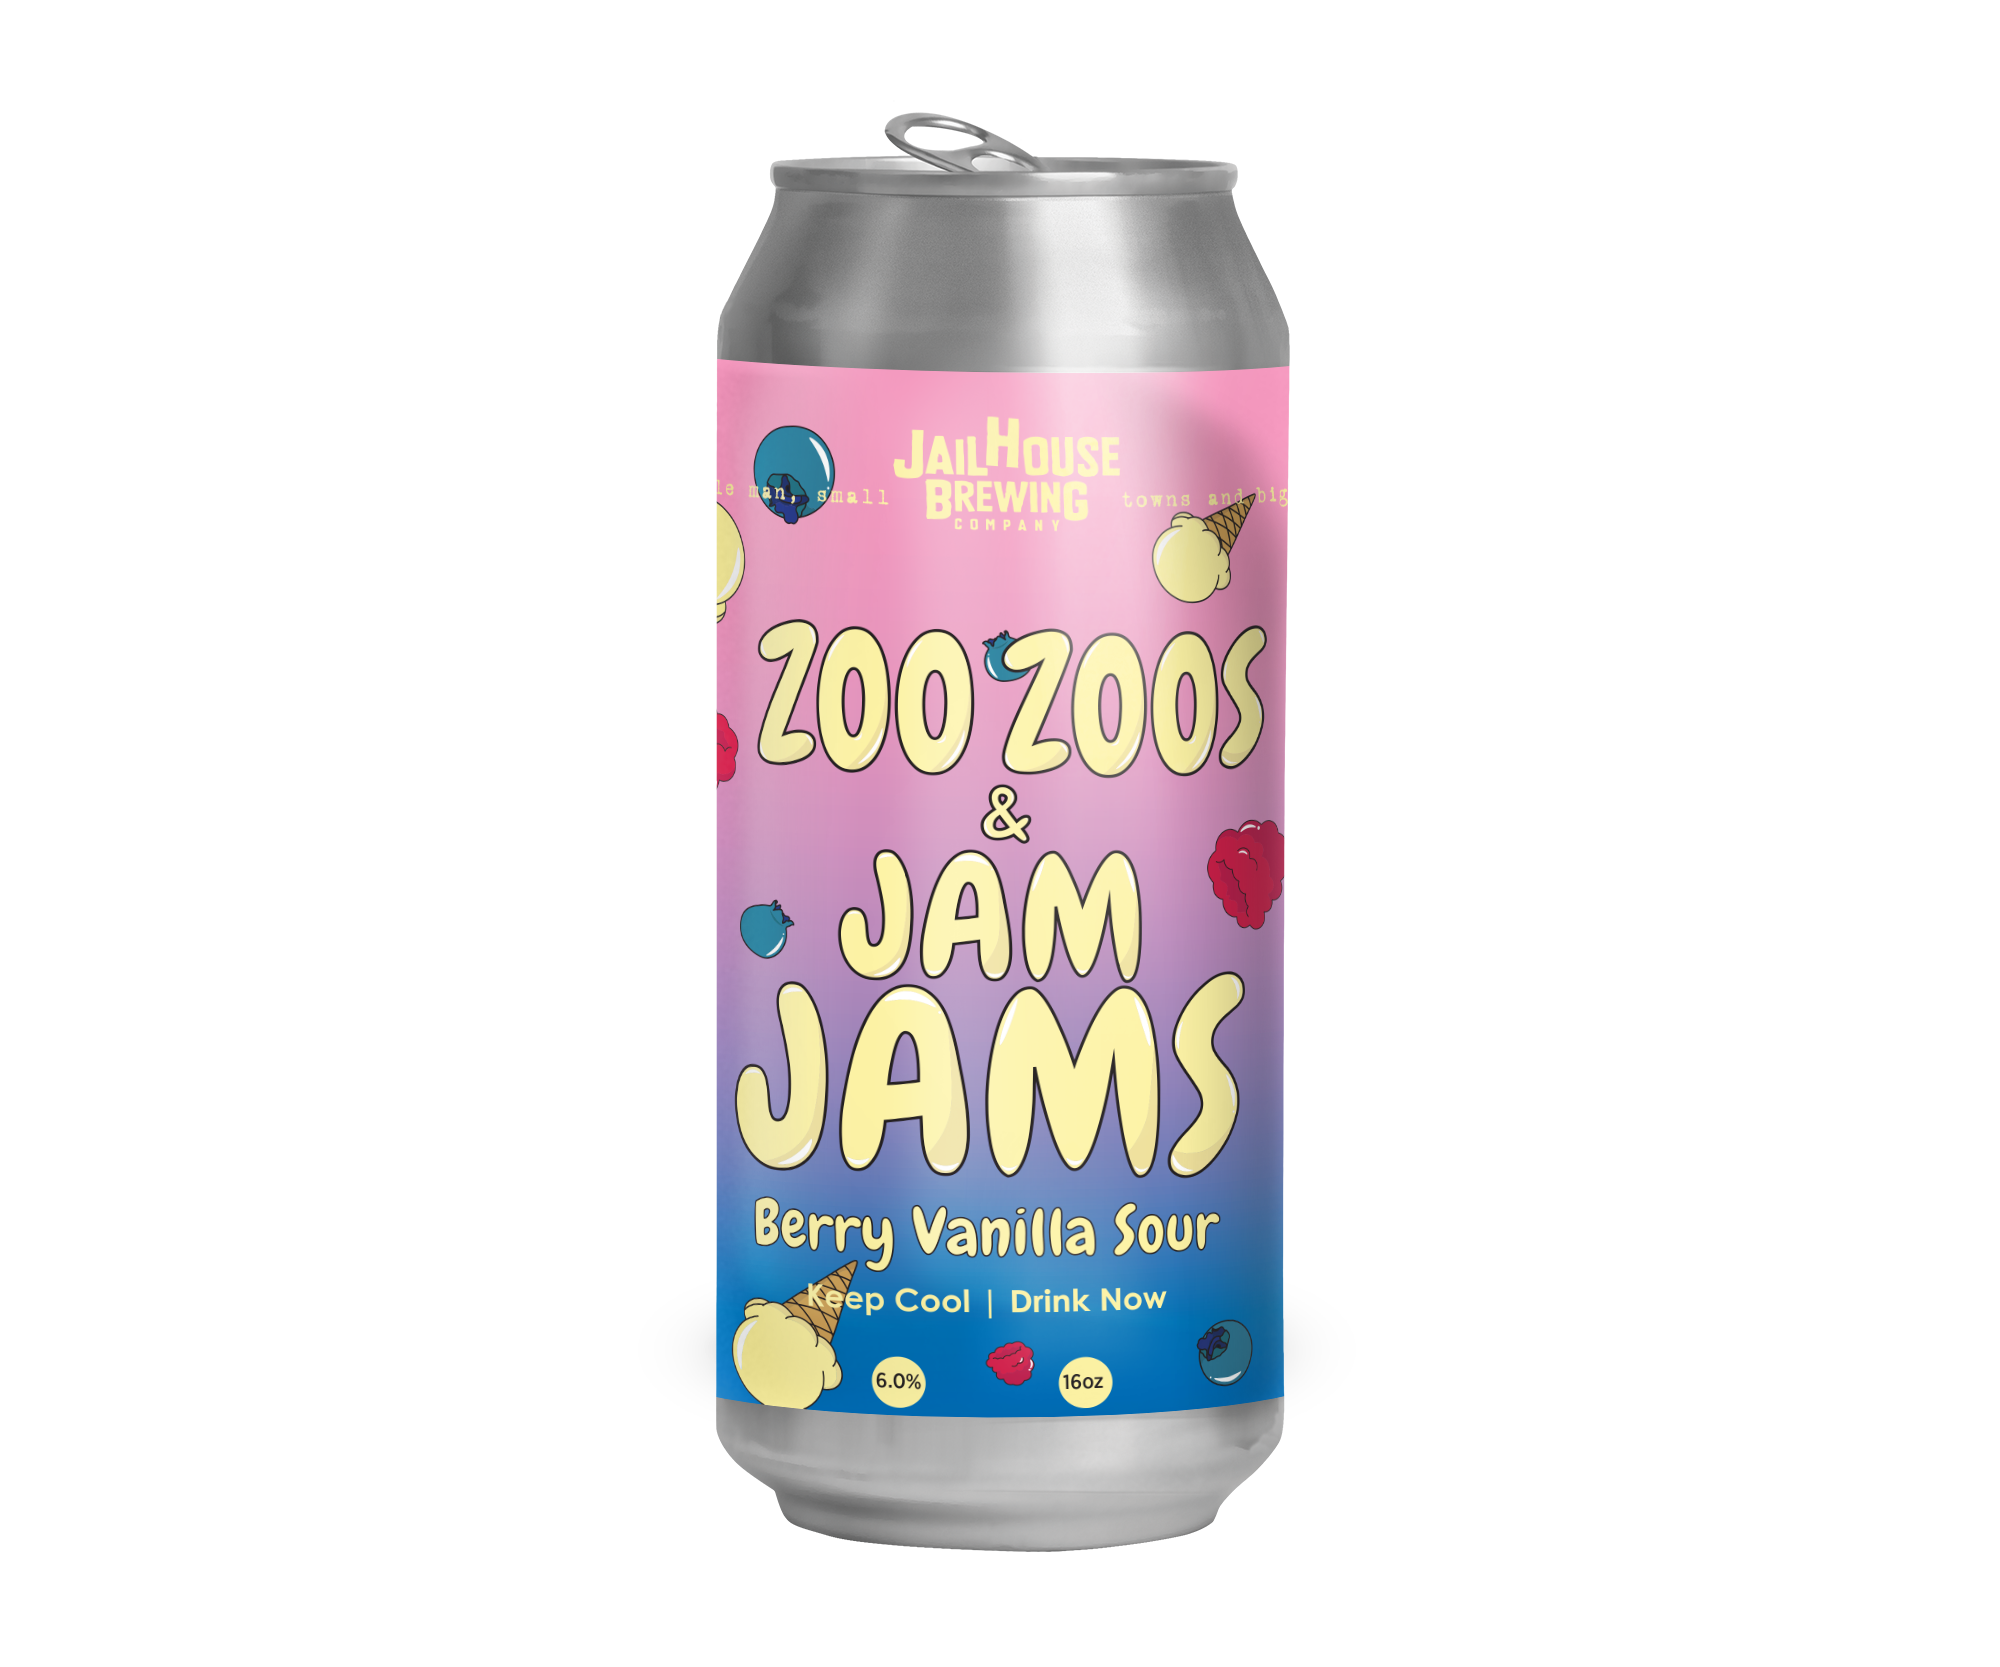 ZOO ZOOS & JAM JAMS   BERRY VANILLA SOUR | 6% | 10 IBU  SOUR CANDY | SHERBET | BLUEBERRY | SMOOTH  MARCH 2019